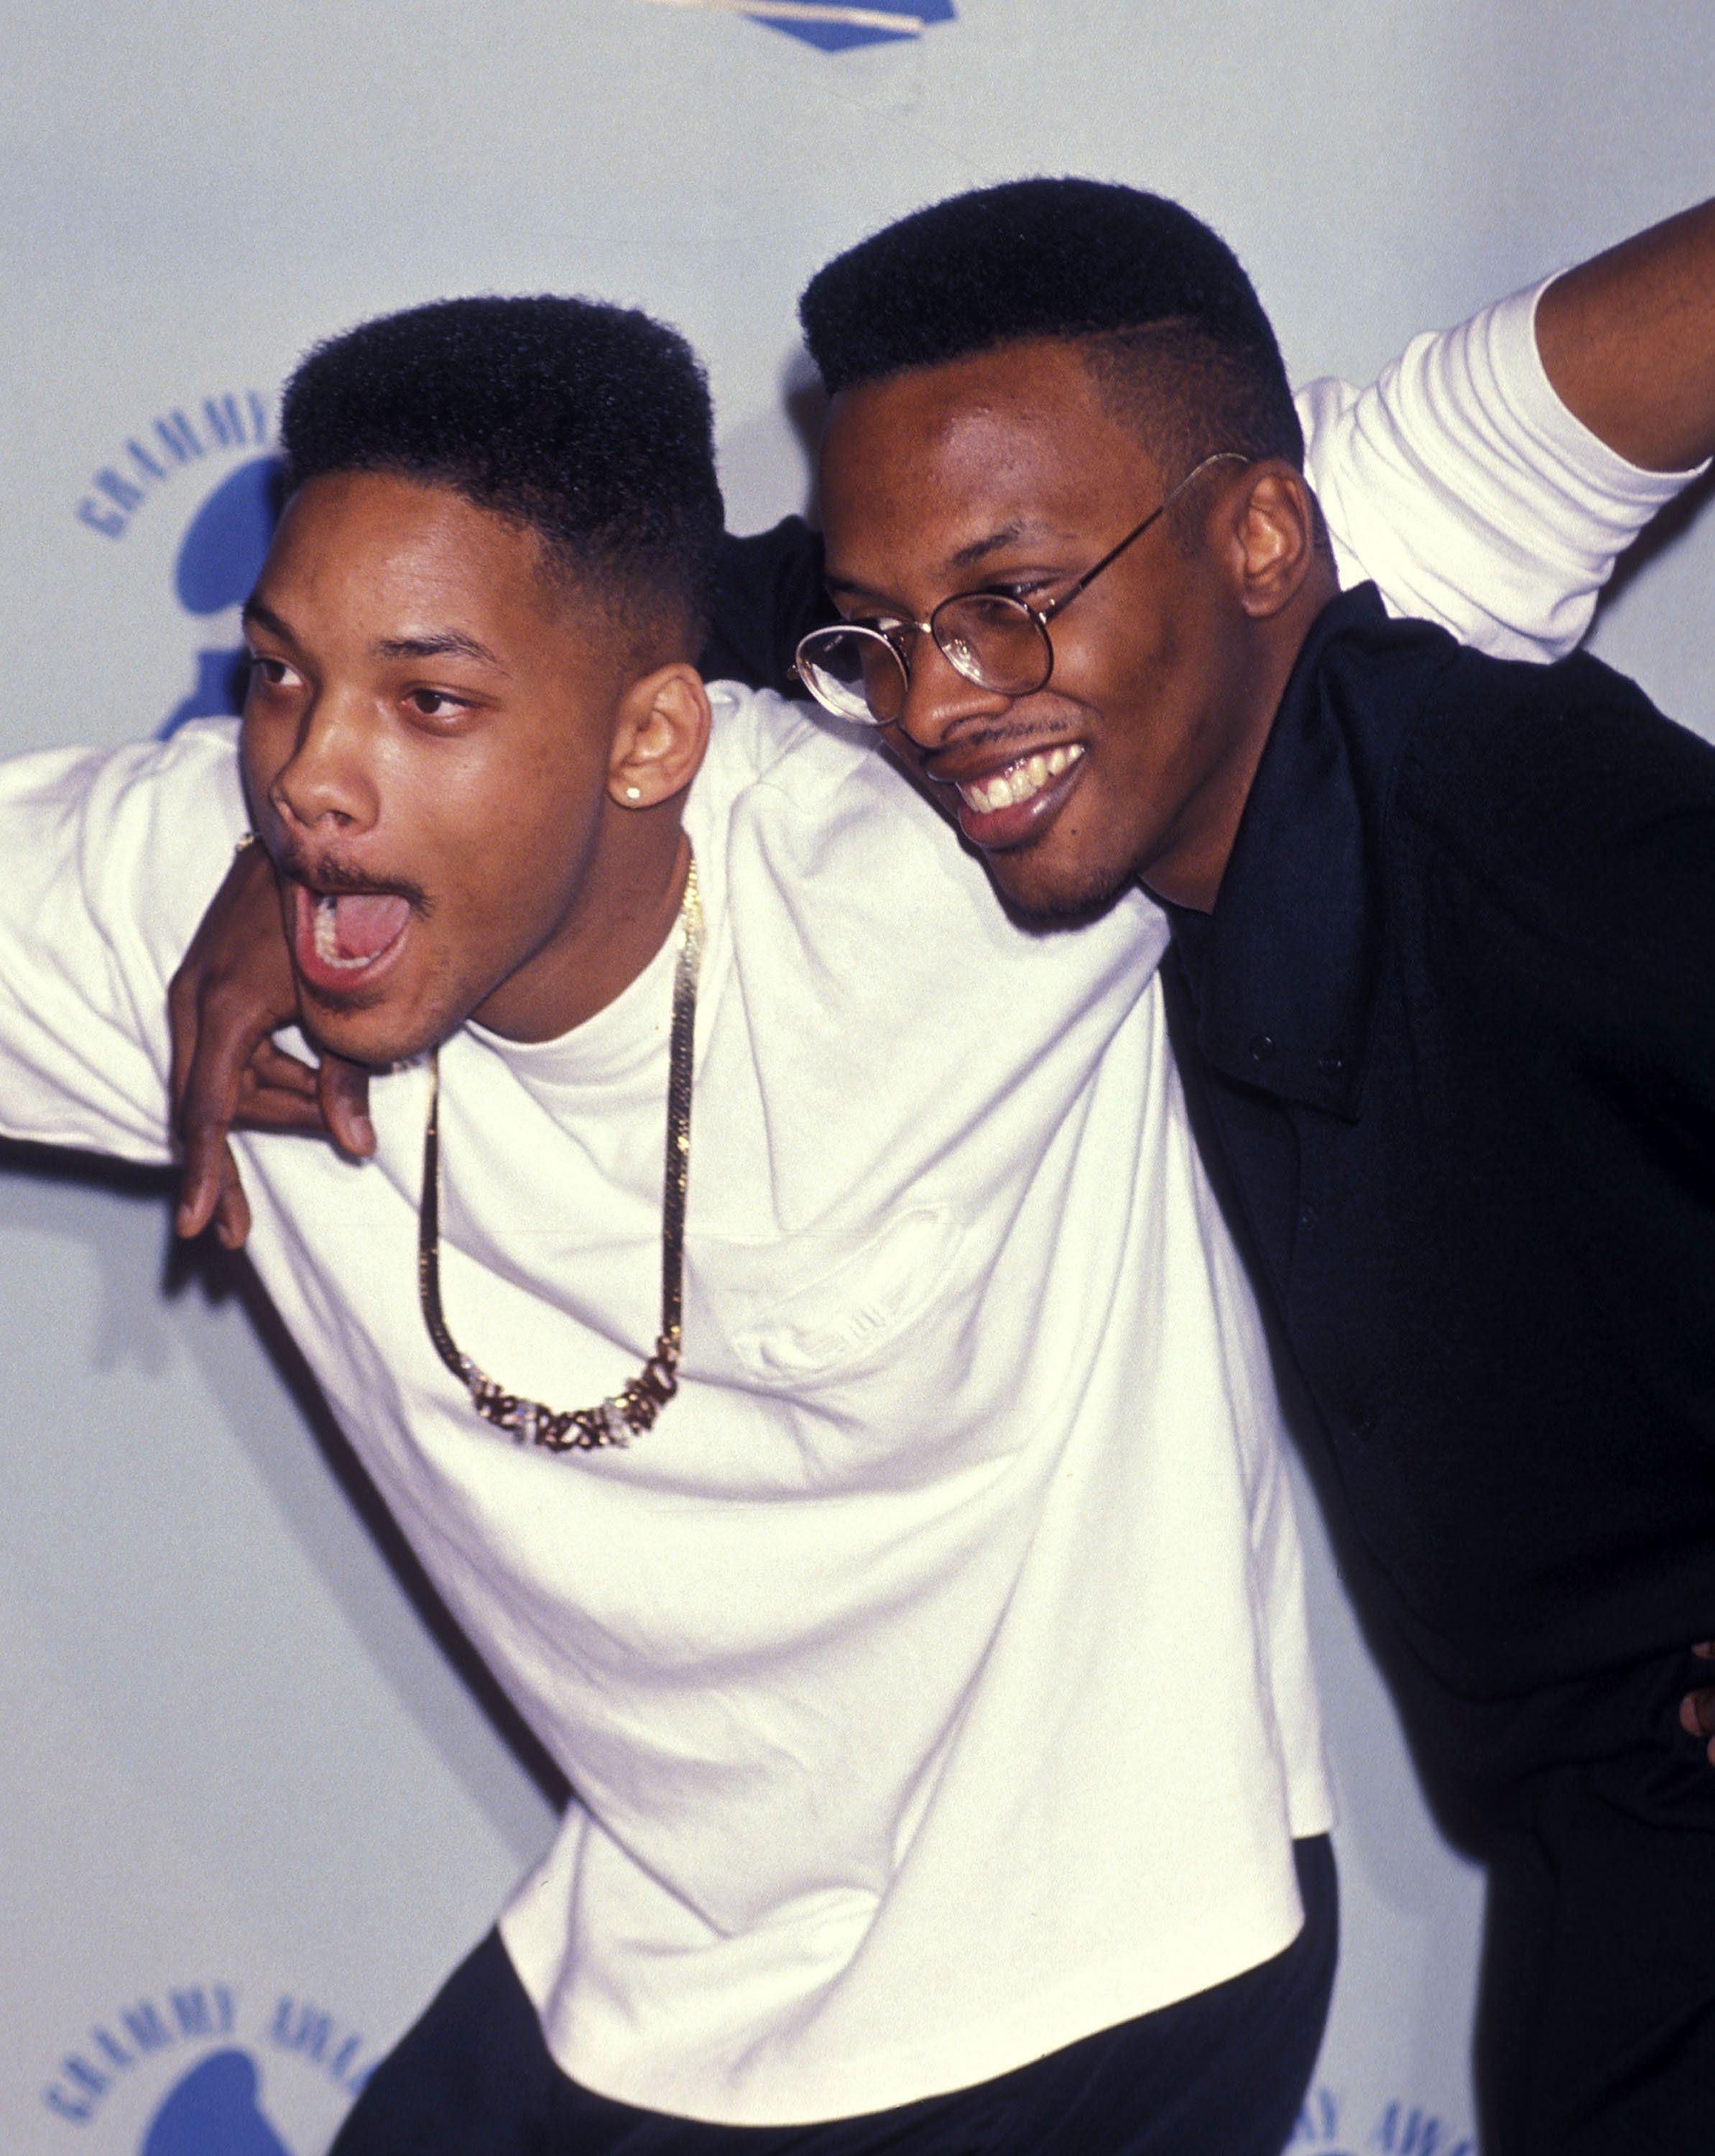 Rapper Will Smith and hip hop artist DJ Jazzy Jeff attend the 32nd Annual Grammy Awards on February 21, 1990 at the Shrine Auditorium in Los Angeles, California. (Photo by Ron Galella, Ltd./WireImage)